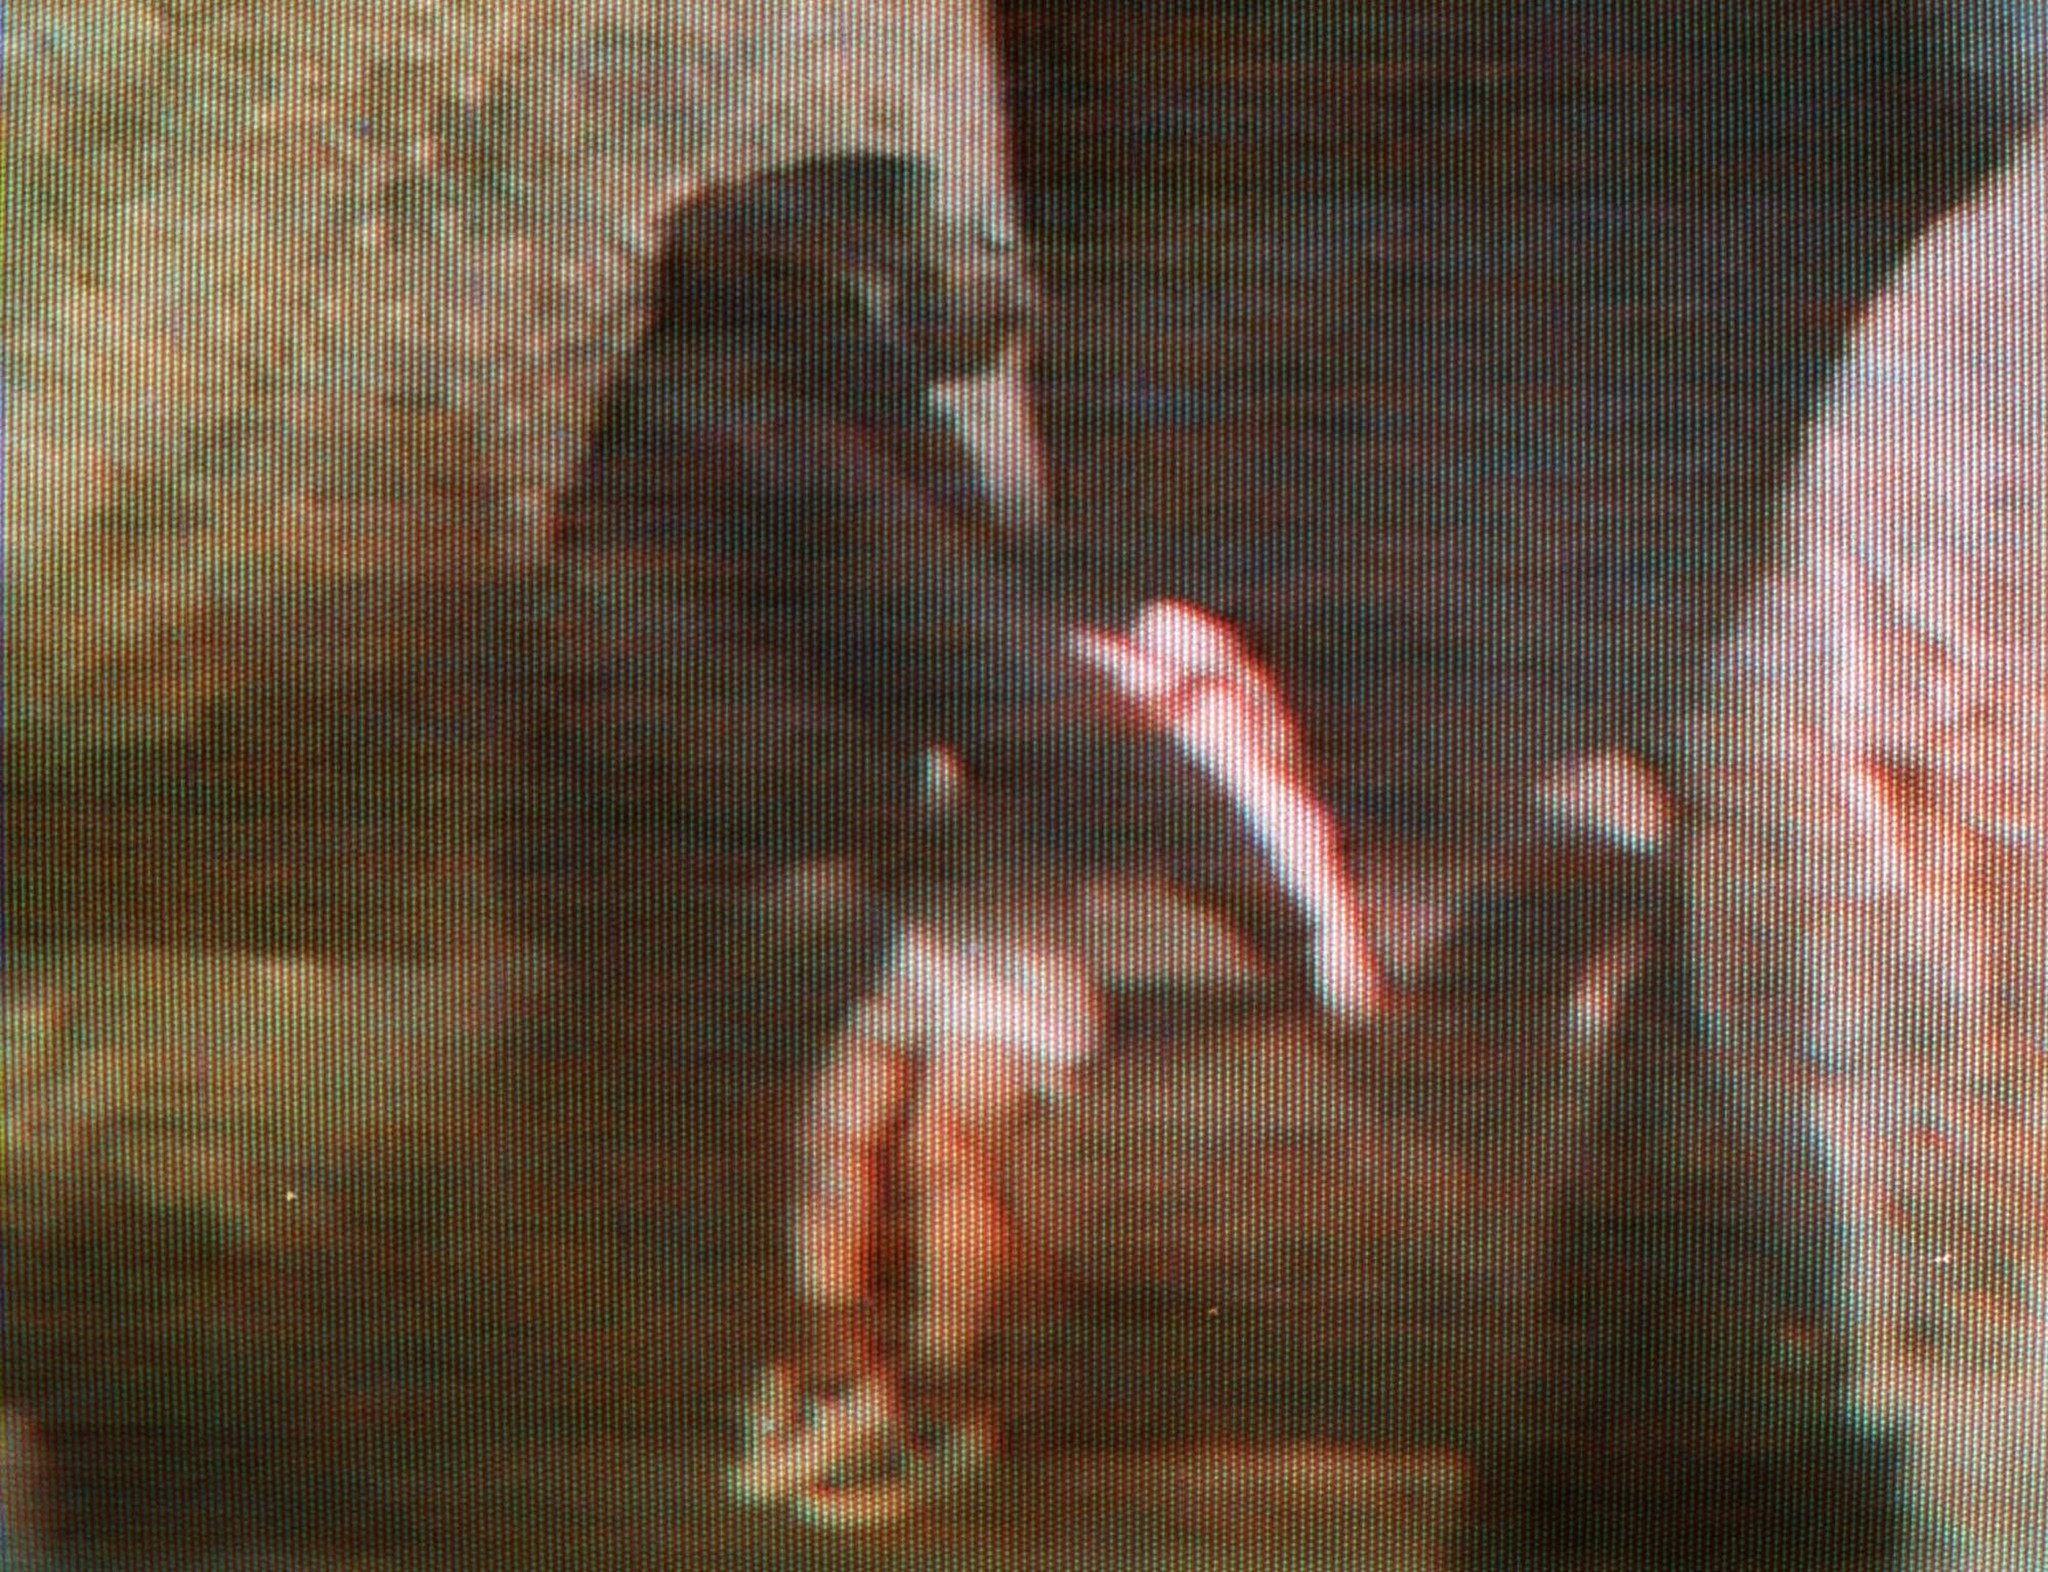 20 years ago today brookfield zoo gorilla helps boy who fell into